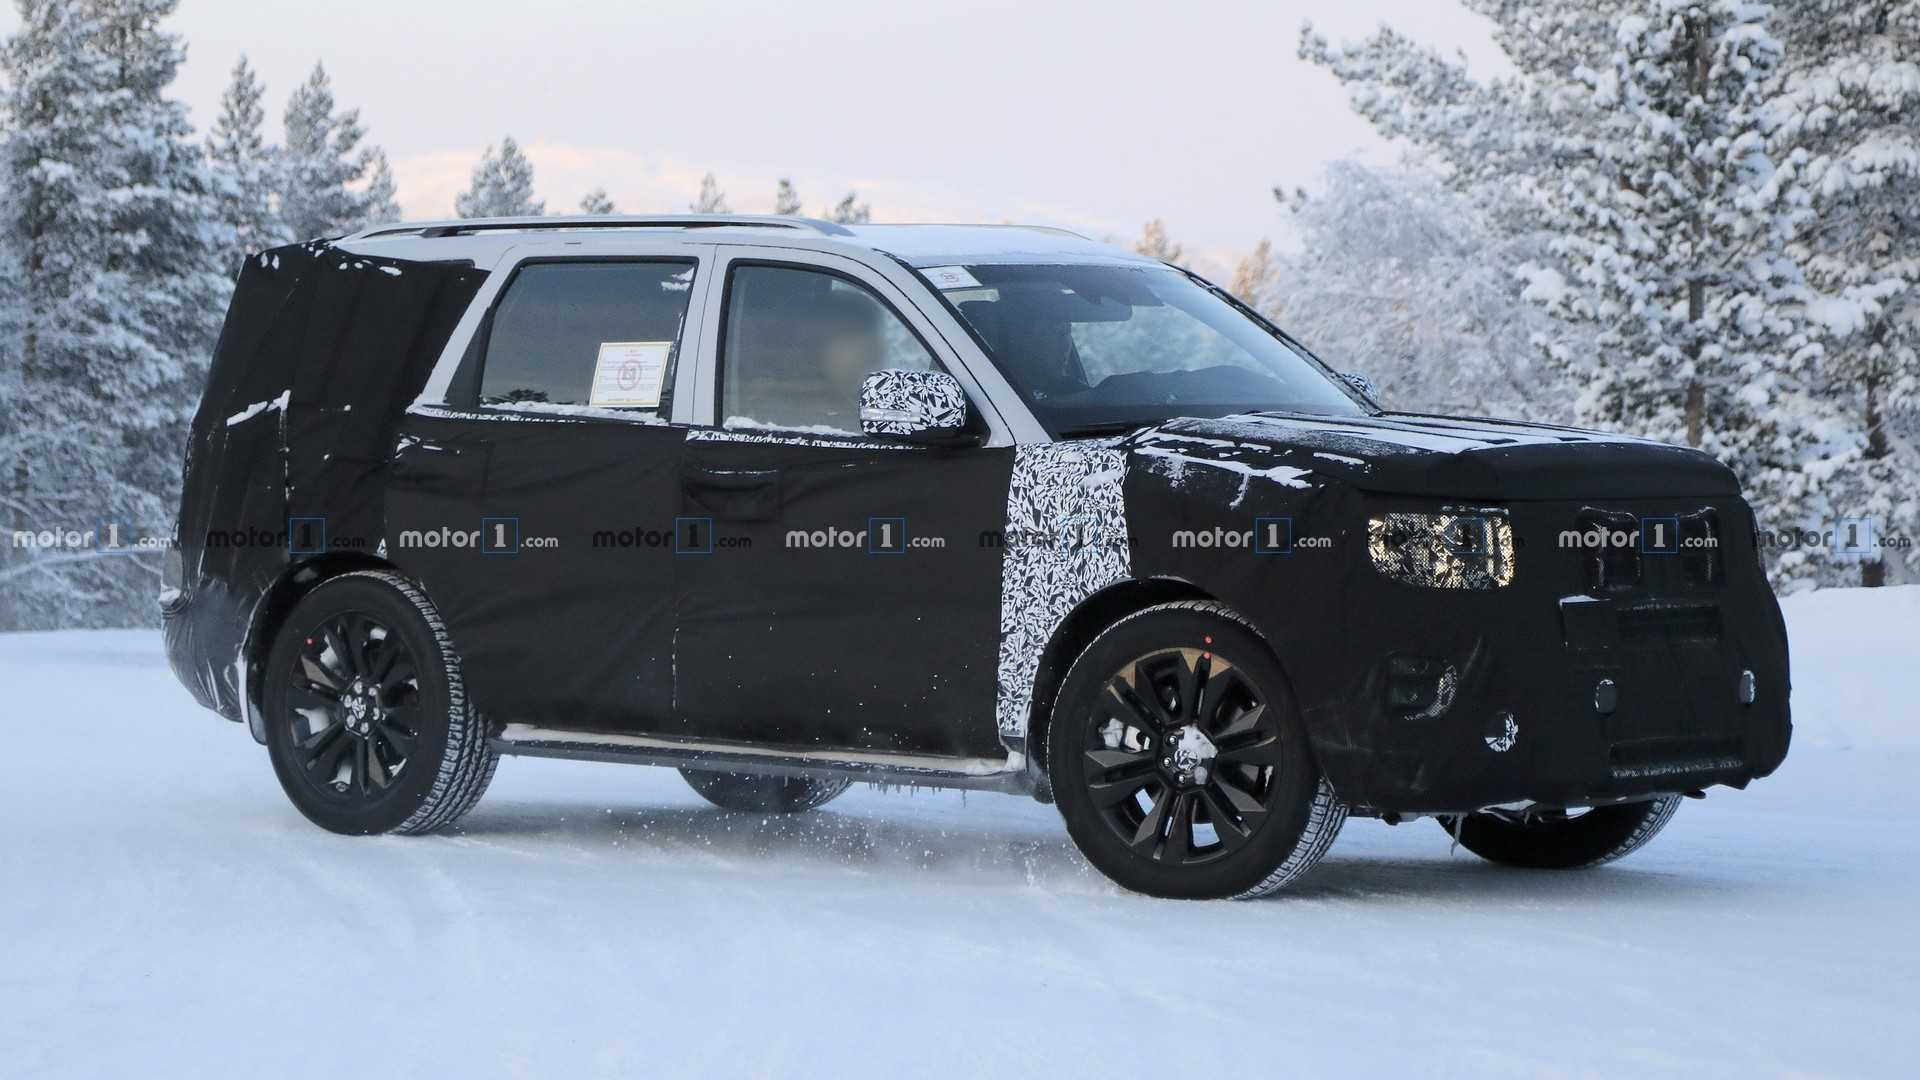 All New Kia Mohave Makes Spy Photo Debut In The Snow